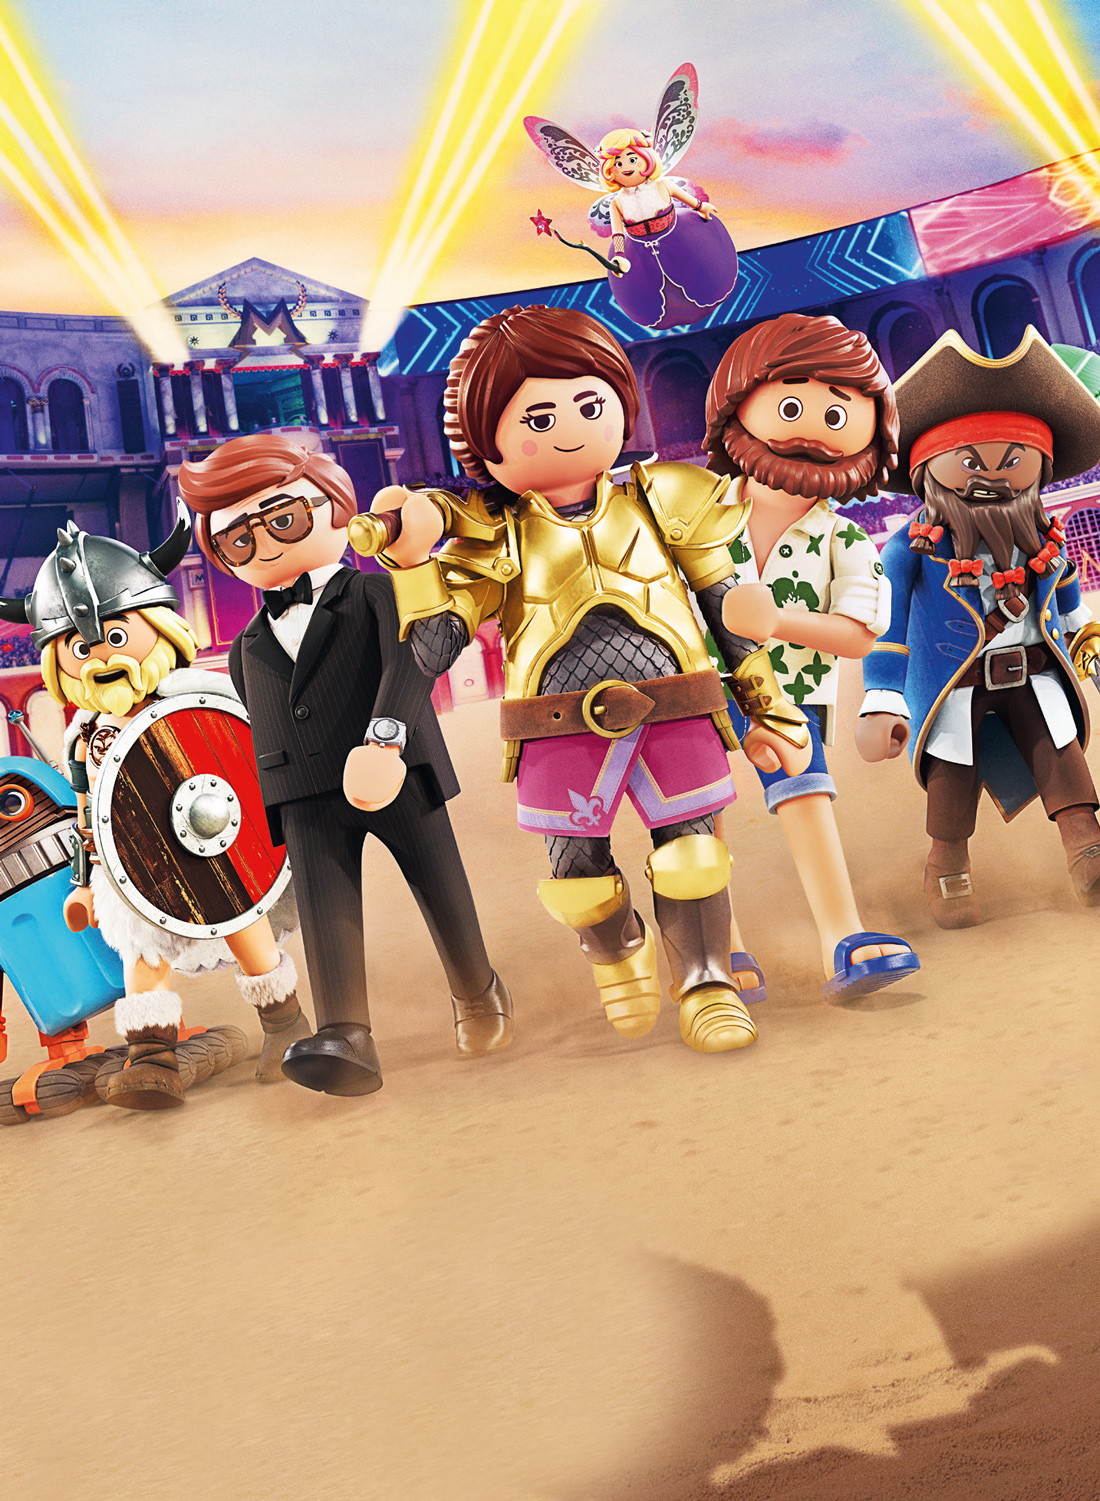 Headerbild playmobil